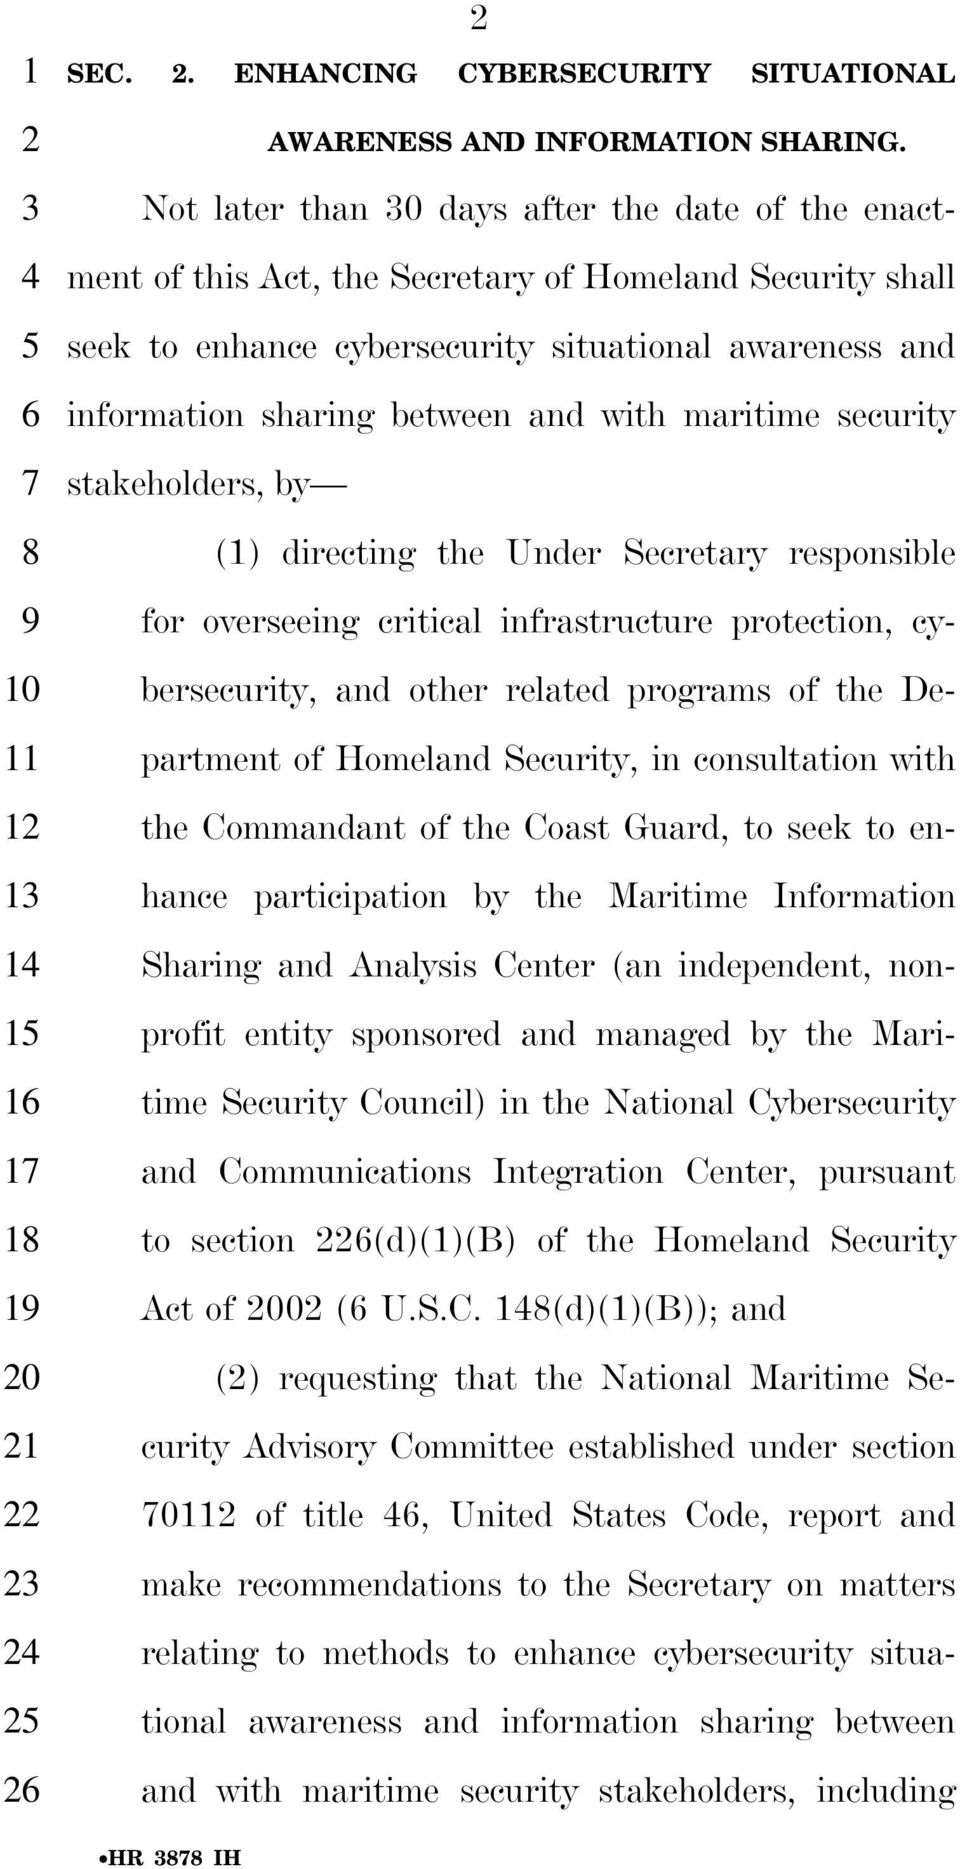 Not later than 0 days after the date of the enactment of this Act, the Secretary of Homeland Security shall seek to enhance cybersecurity situational awareness and information sharing between and